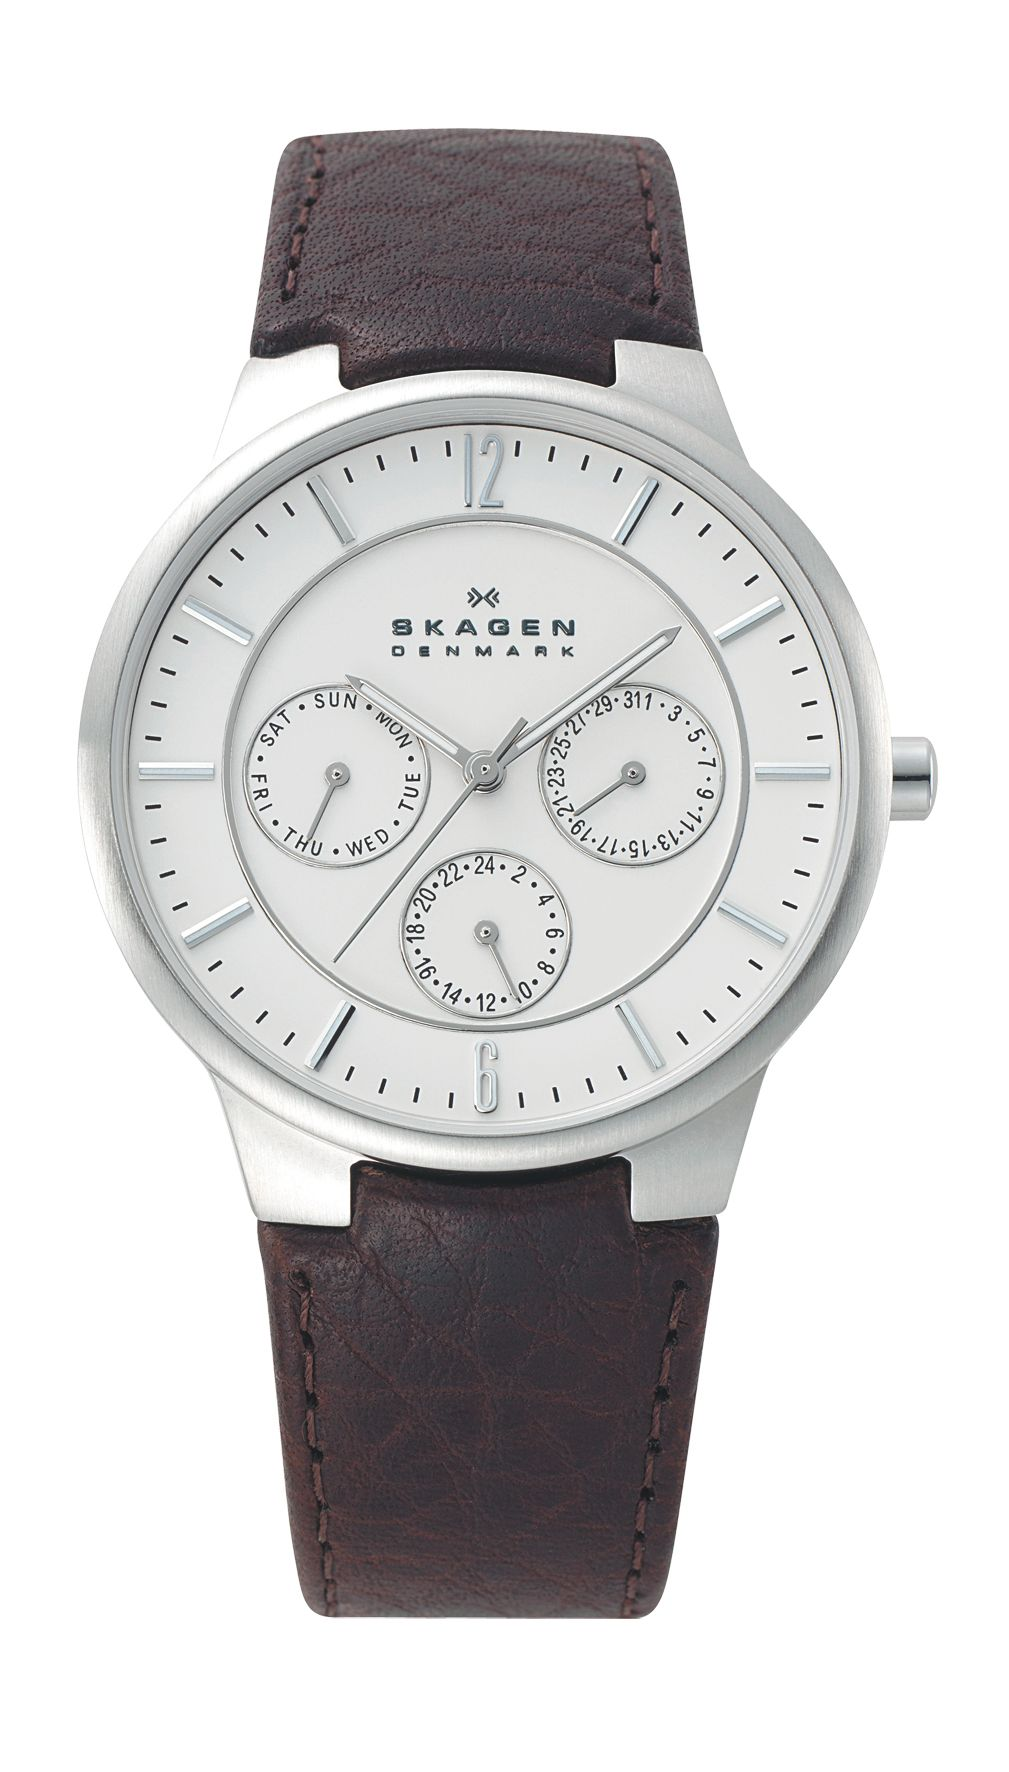 331XLSL1 Brown Pebble Leather Strap Watch